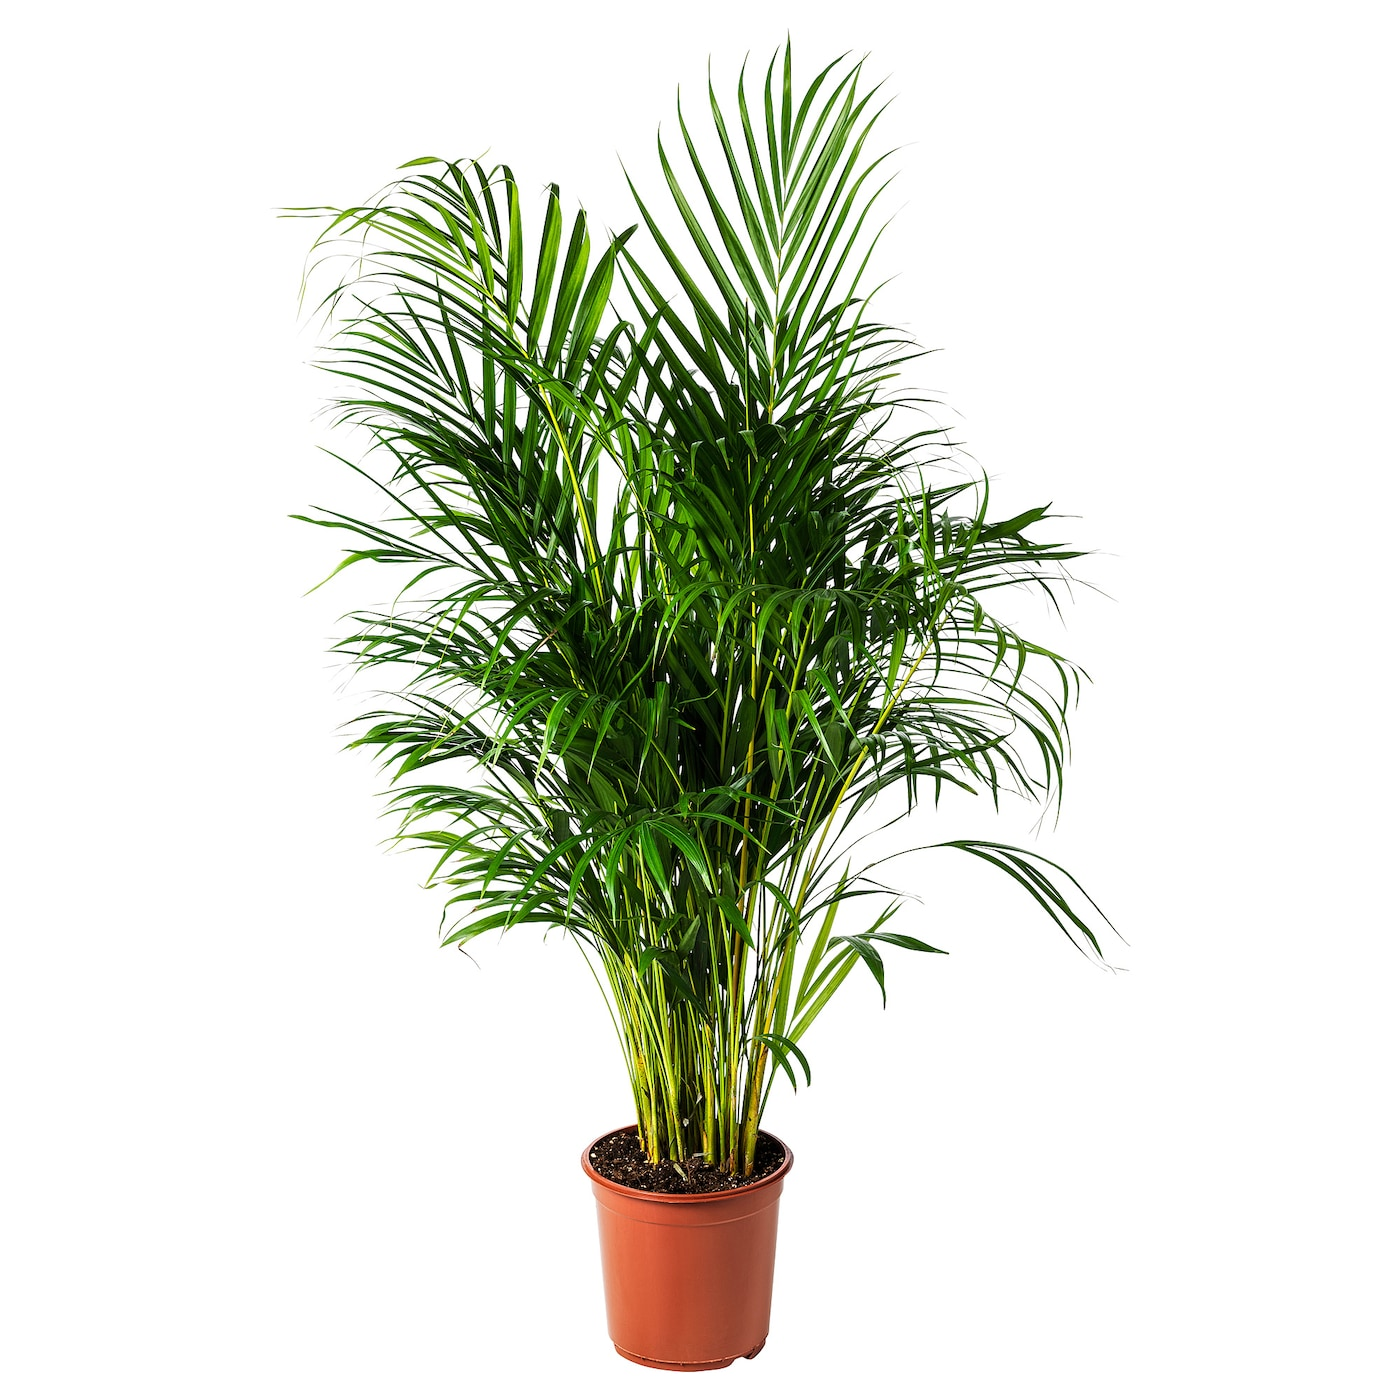 chrysalidocarpus lutescens potted plant areca palm 24 cm ikea. Black Bedroom Furniture Sets. Home Design Ideas